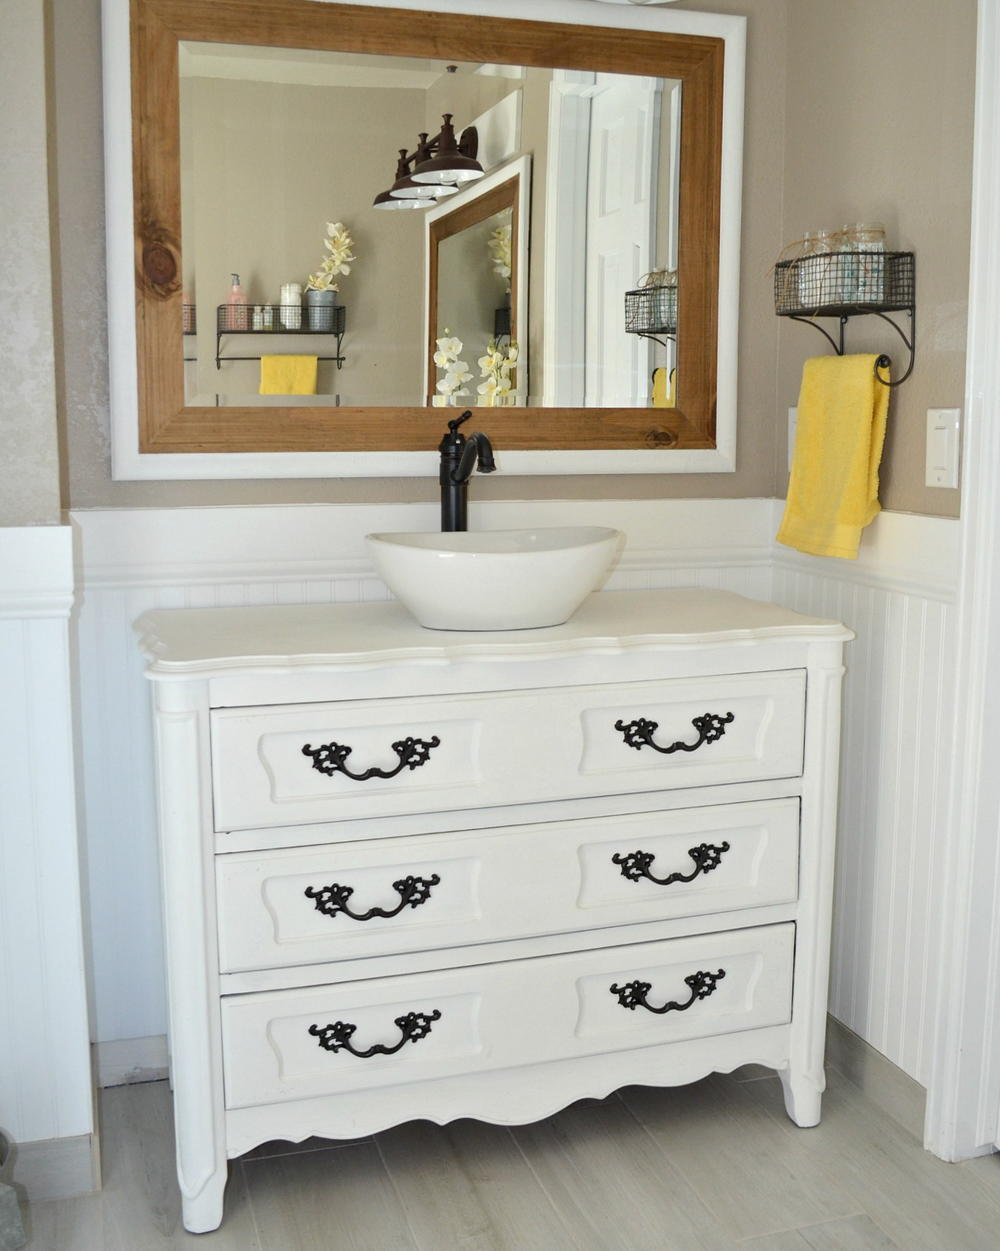 Country Chic Upcycled Bathroom Vanity Diyideacenter Com